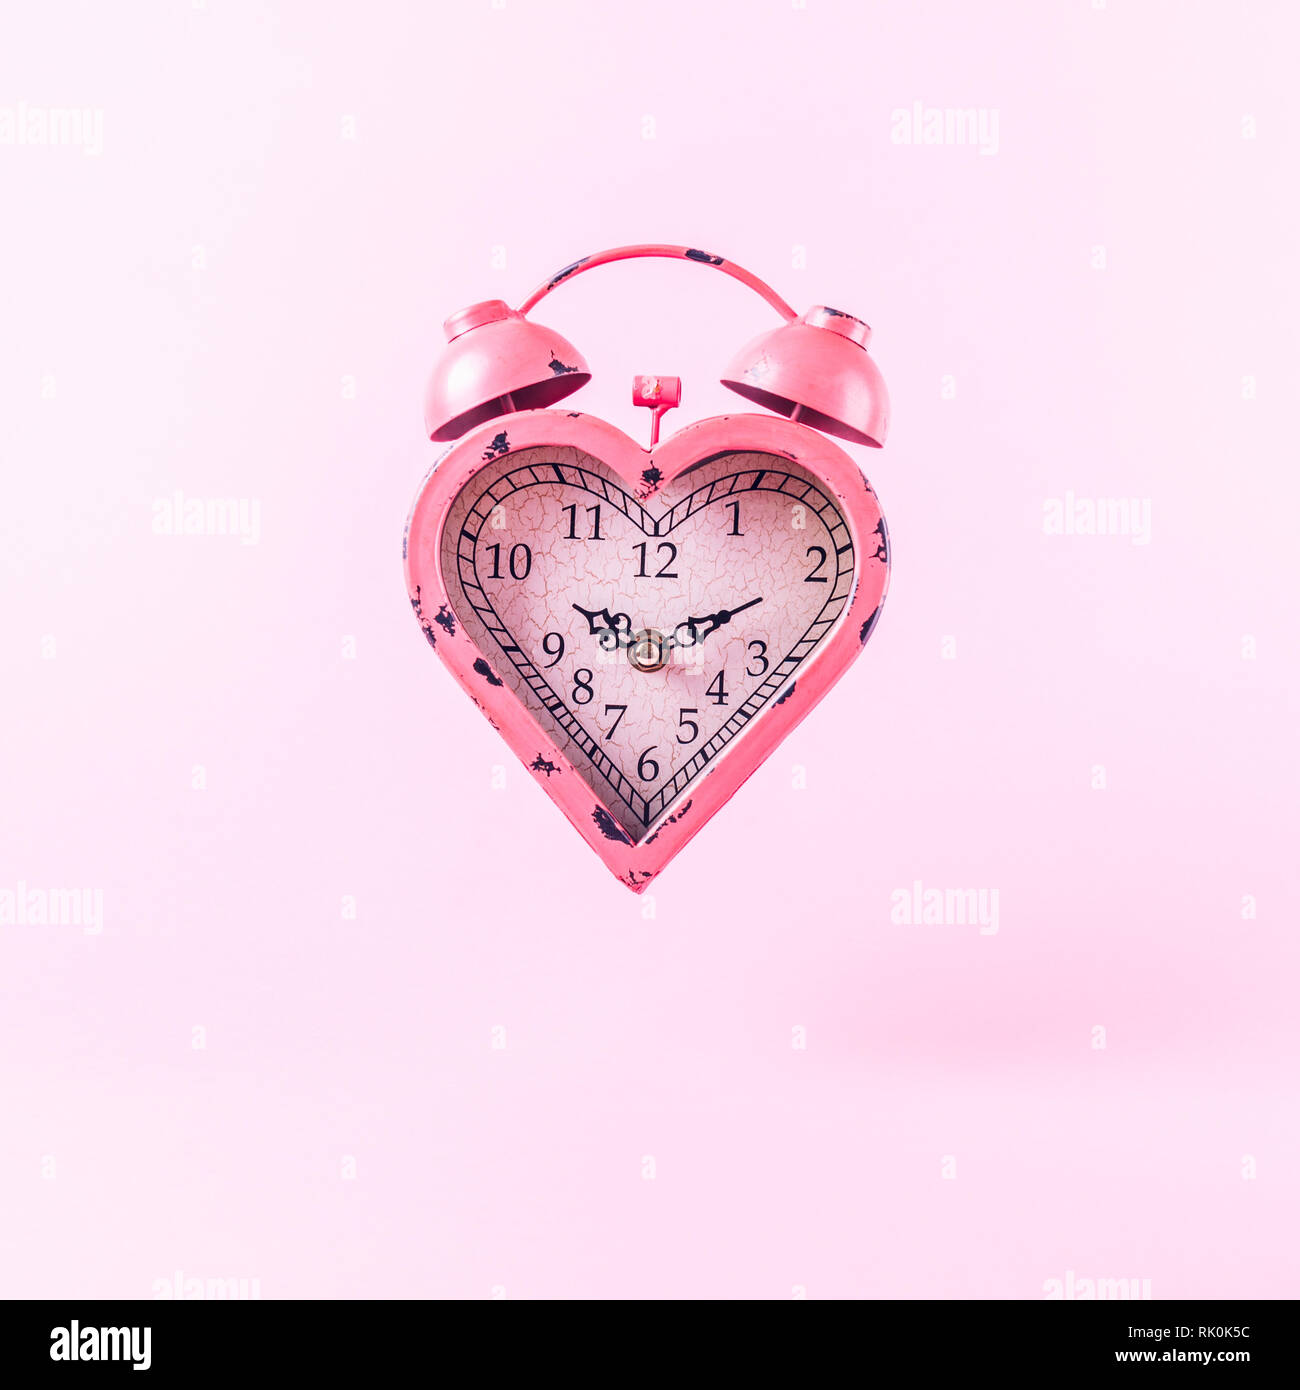 Heart shaped clock on pink background.  Valentines day and love infitity and duration concept. Square - Stock Image